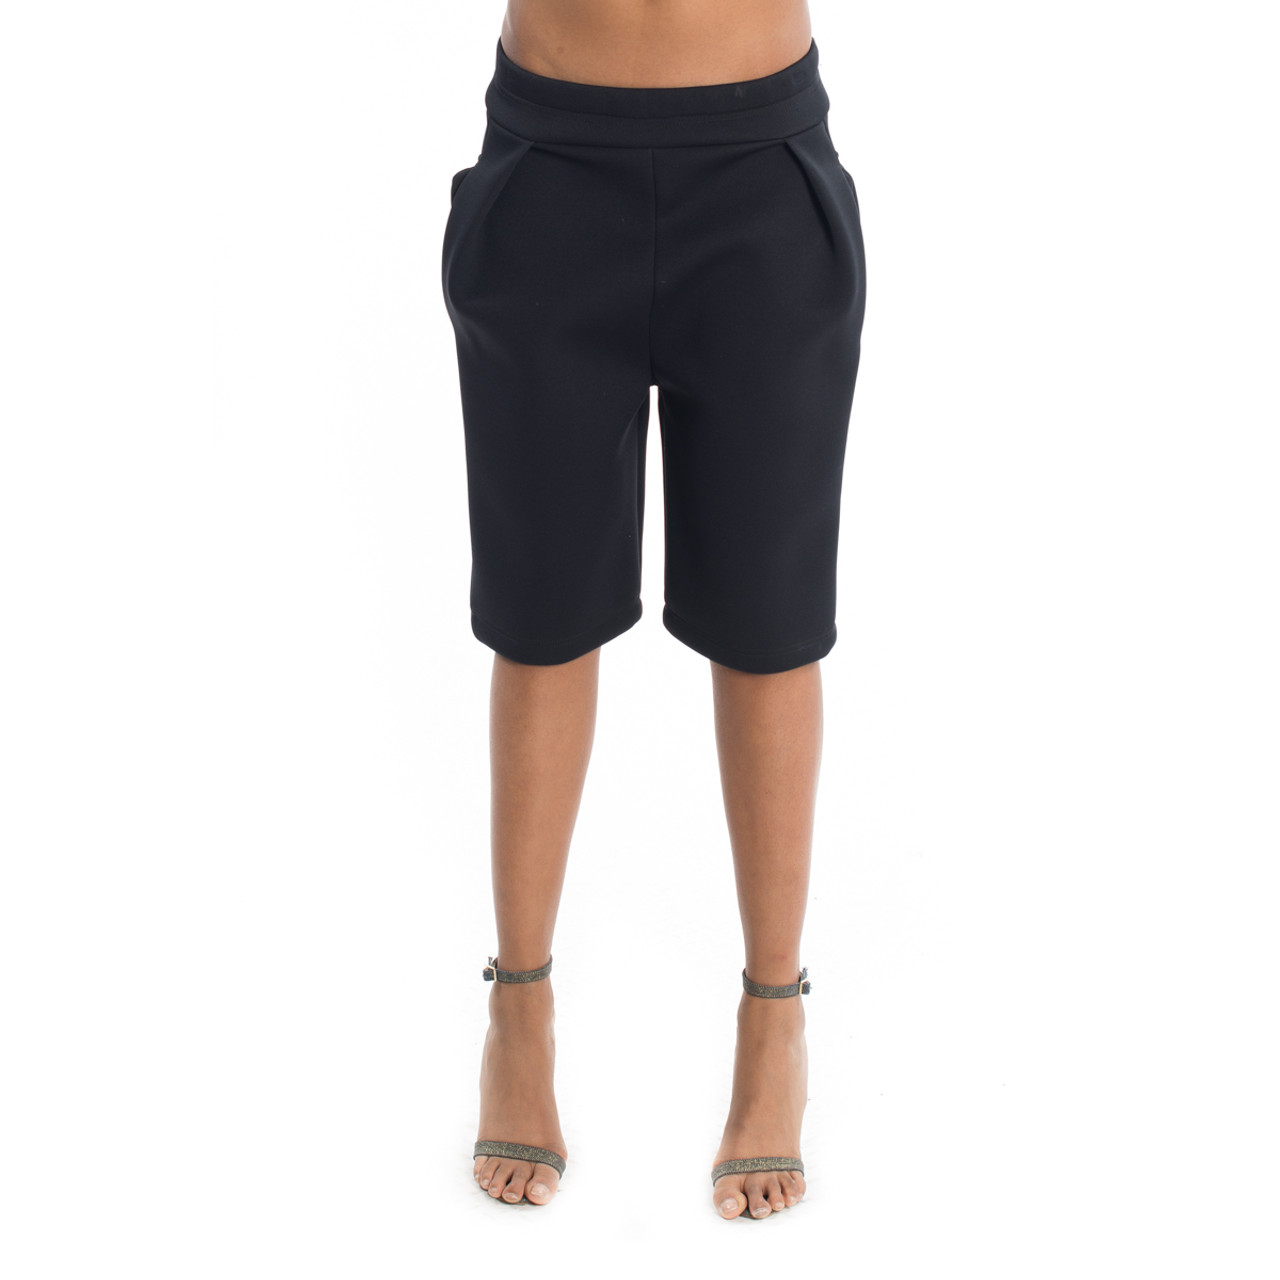 Black Neoprene Shorts